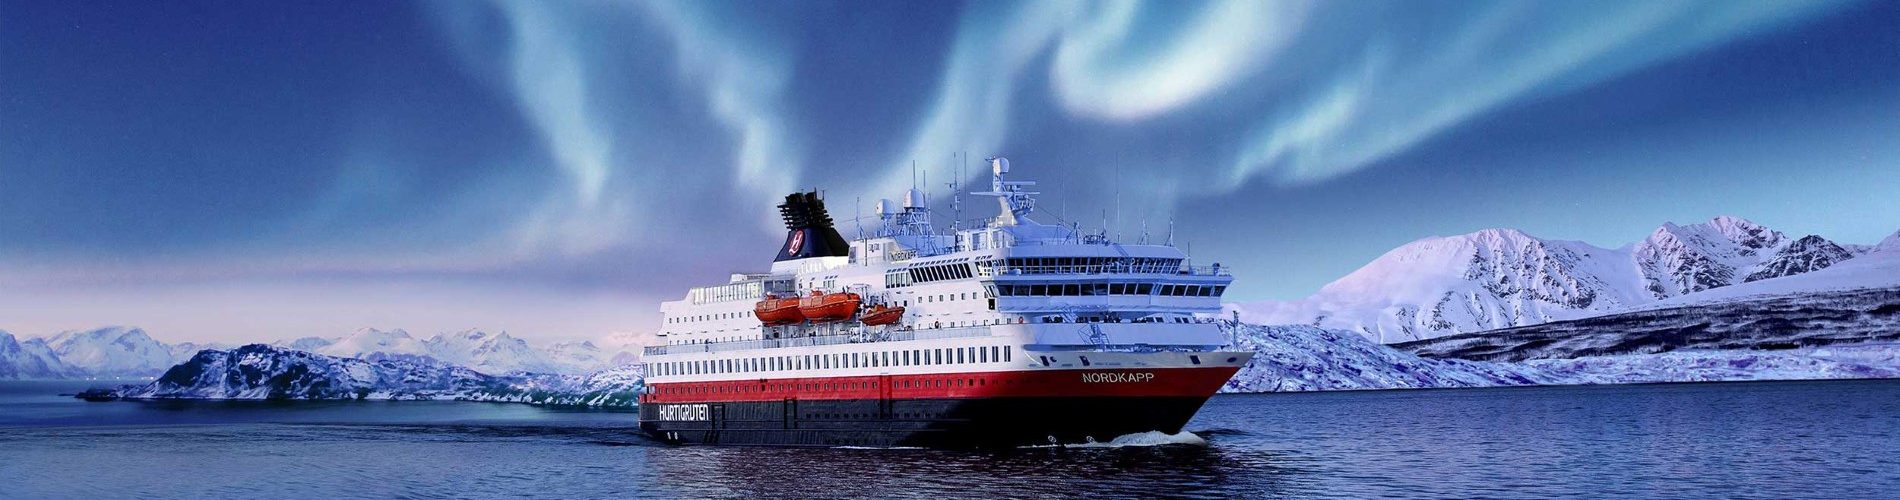 Expedition cruise line Hurtigruten extends suspension of operations